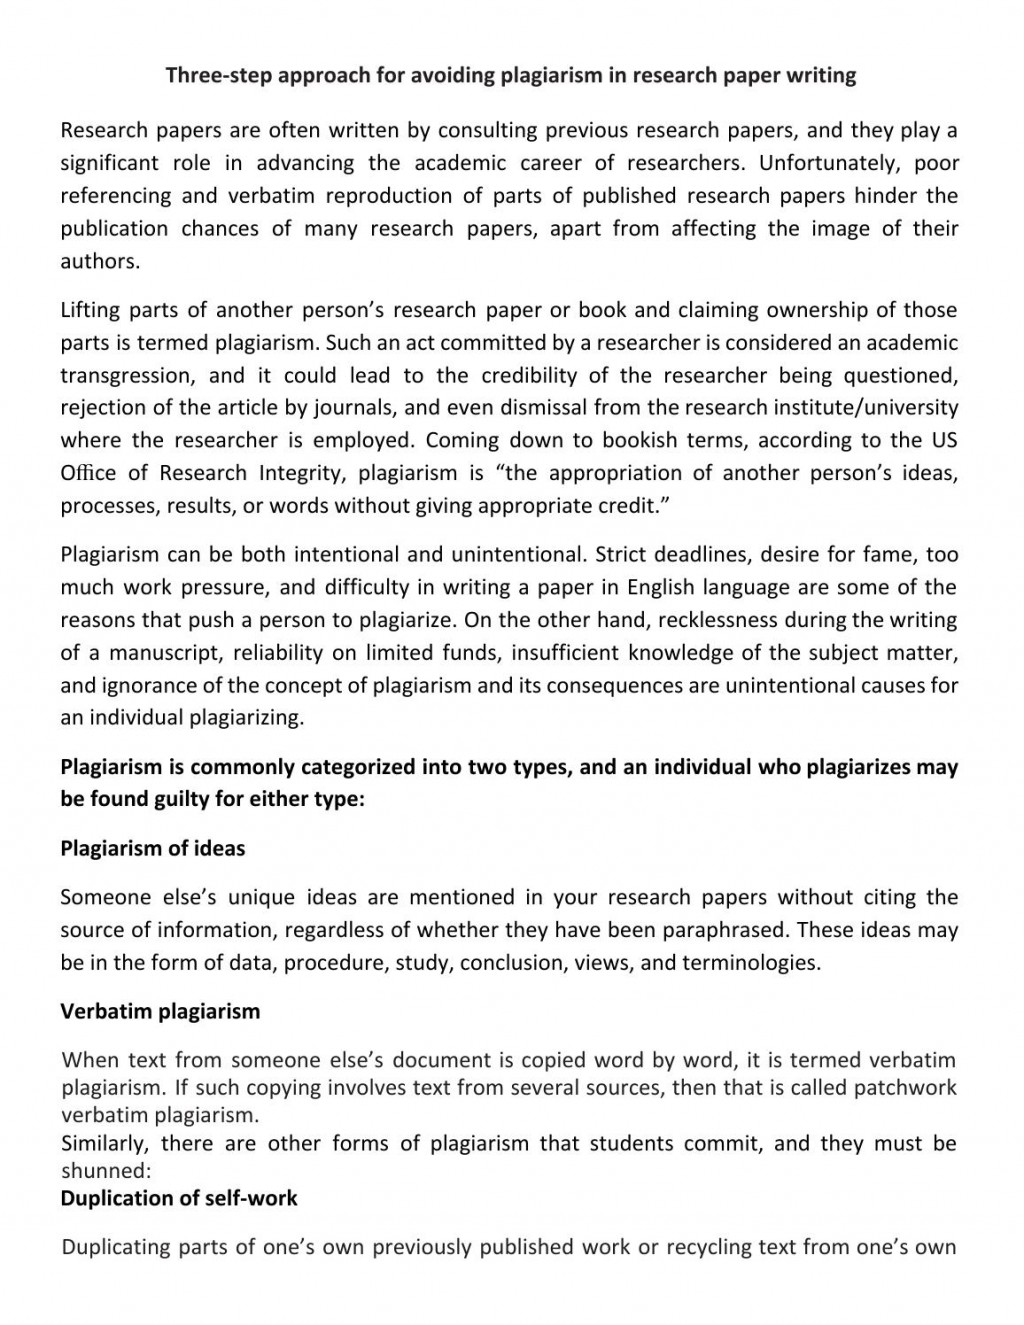 006 Page 1 How Do I Write Research Paper Without Wondrous A Plagiarizing To Large